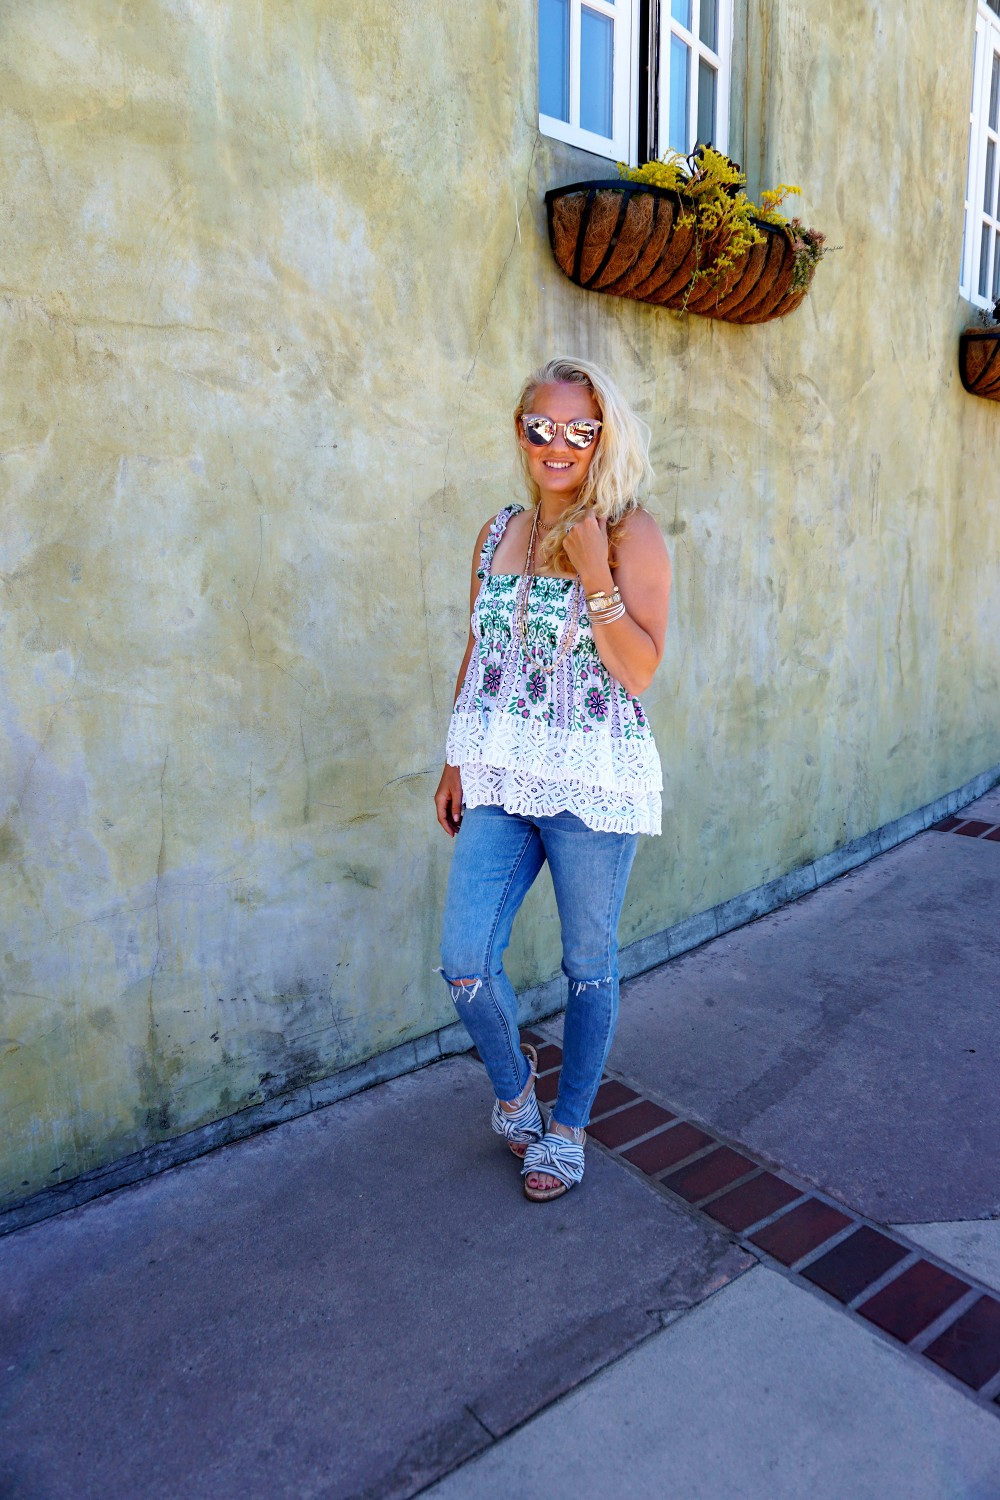 Tiered Babydoll Top-Lace Trim Silk Georgette Top by Tory Burch-Spring Outfit Inspiration-Bay Area Fashion Blogger-Weekend Style-Have Need Want 4